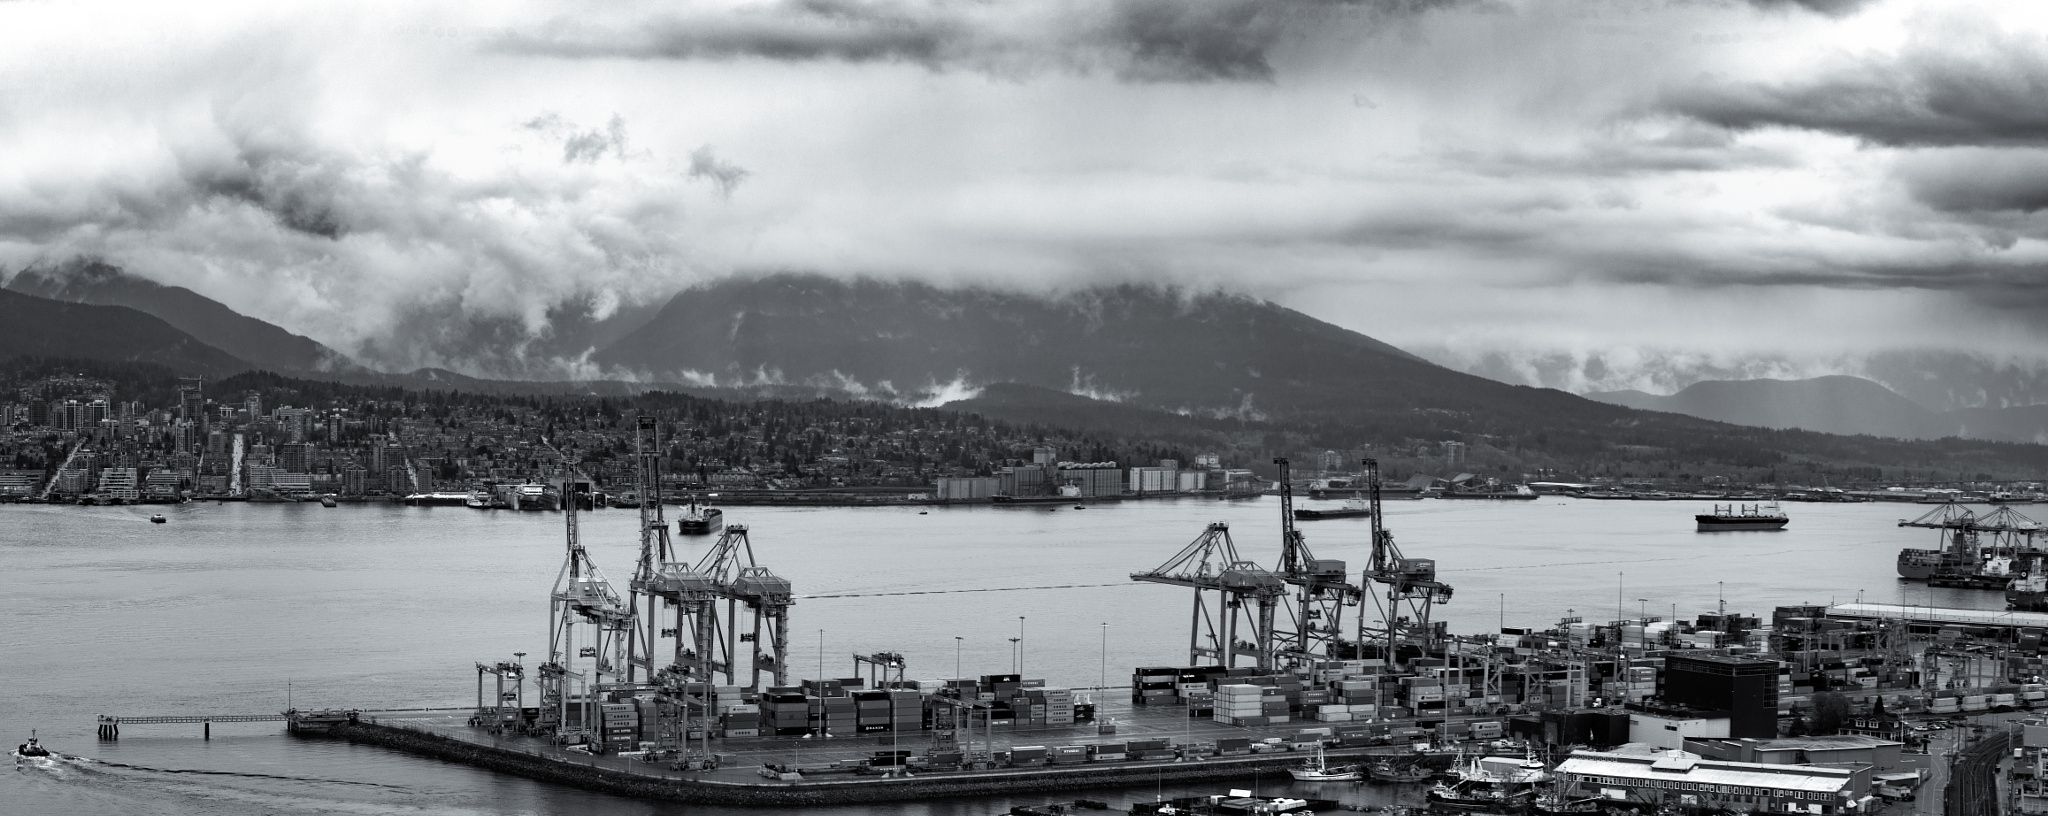 Vancouver Harbour - A rainy Thursday from the rooftop of my new digs.